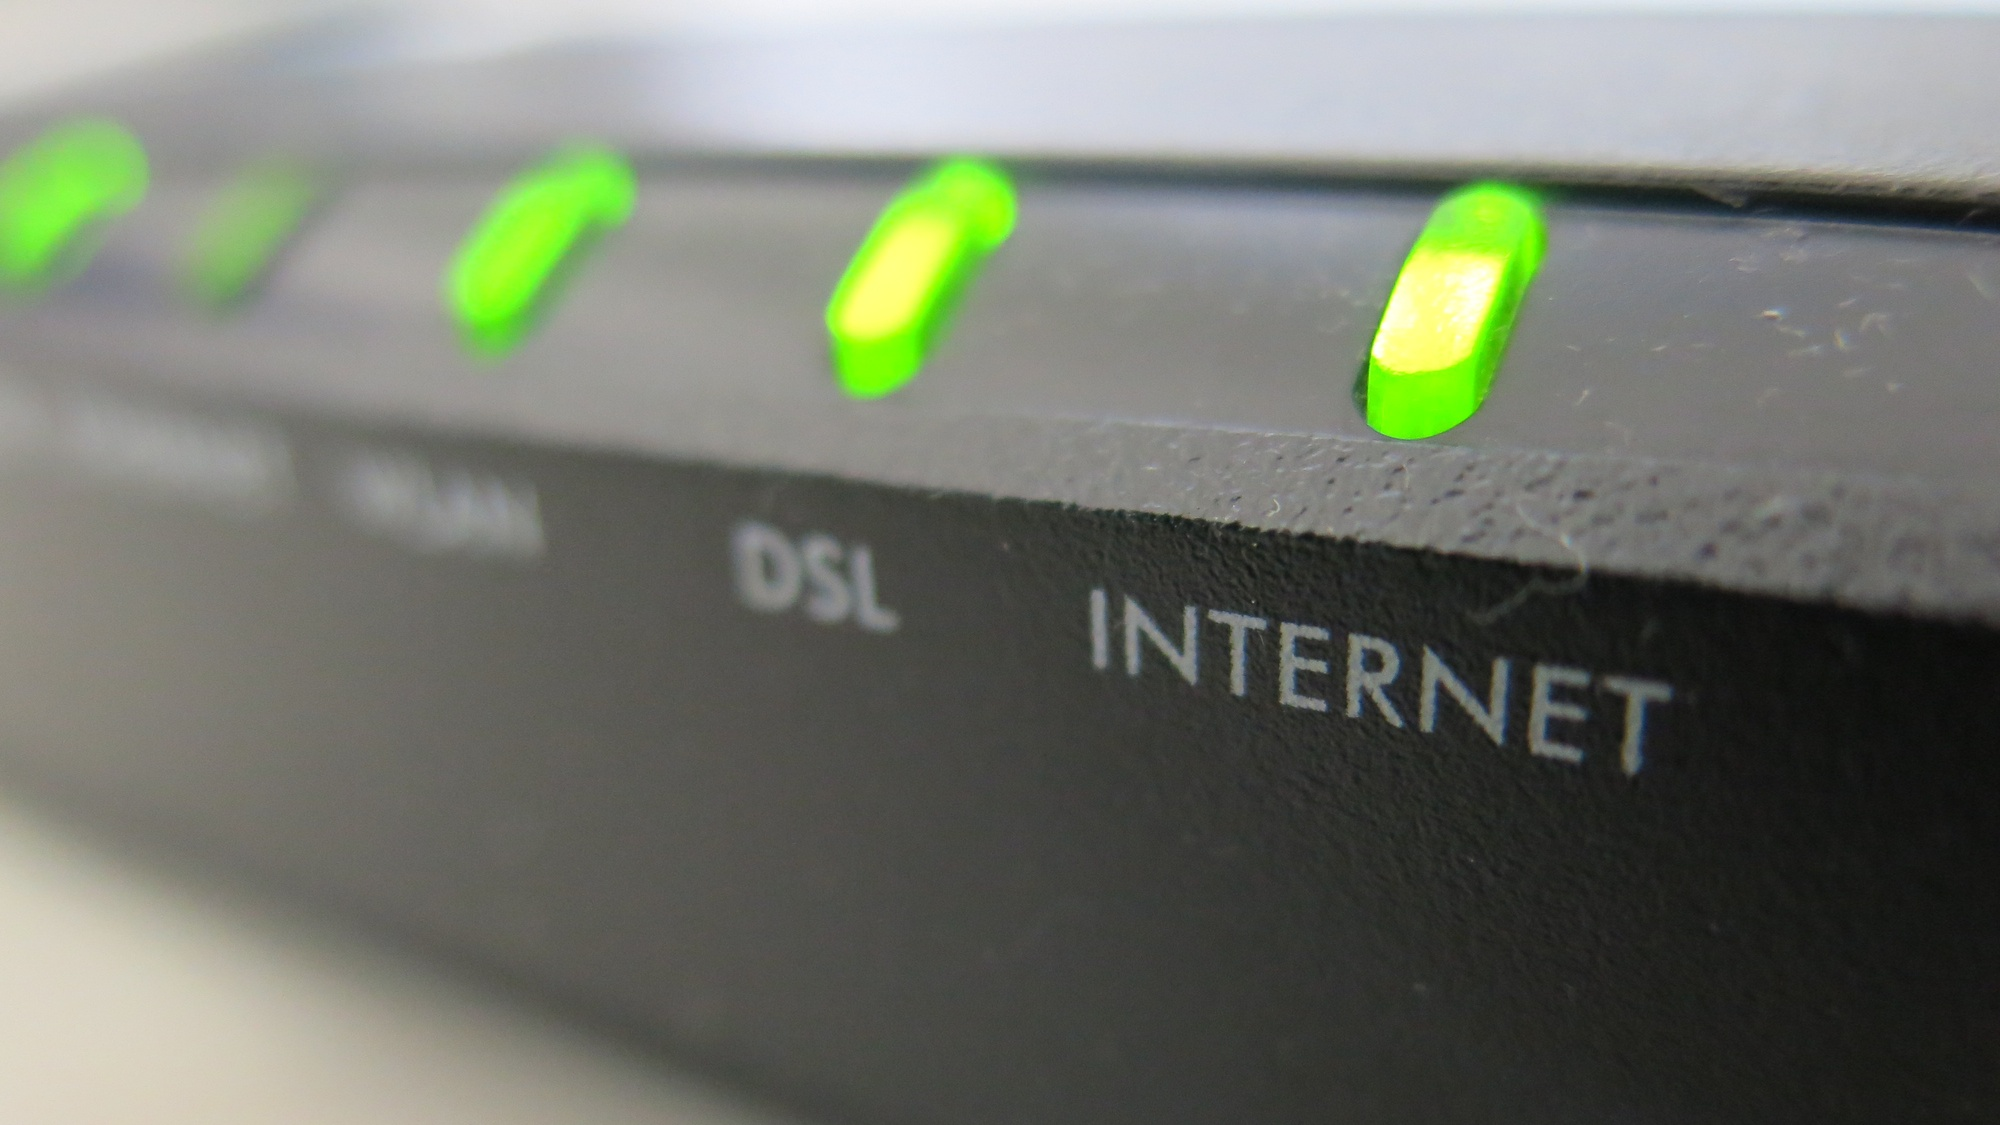 If you have a Wi-Fi router, the firmware is probably old, a new report says